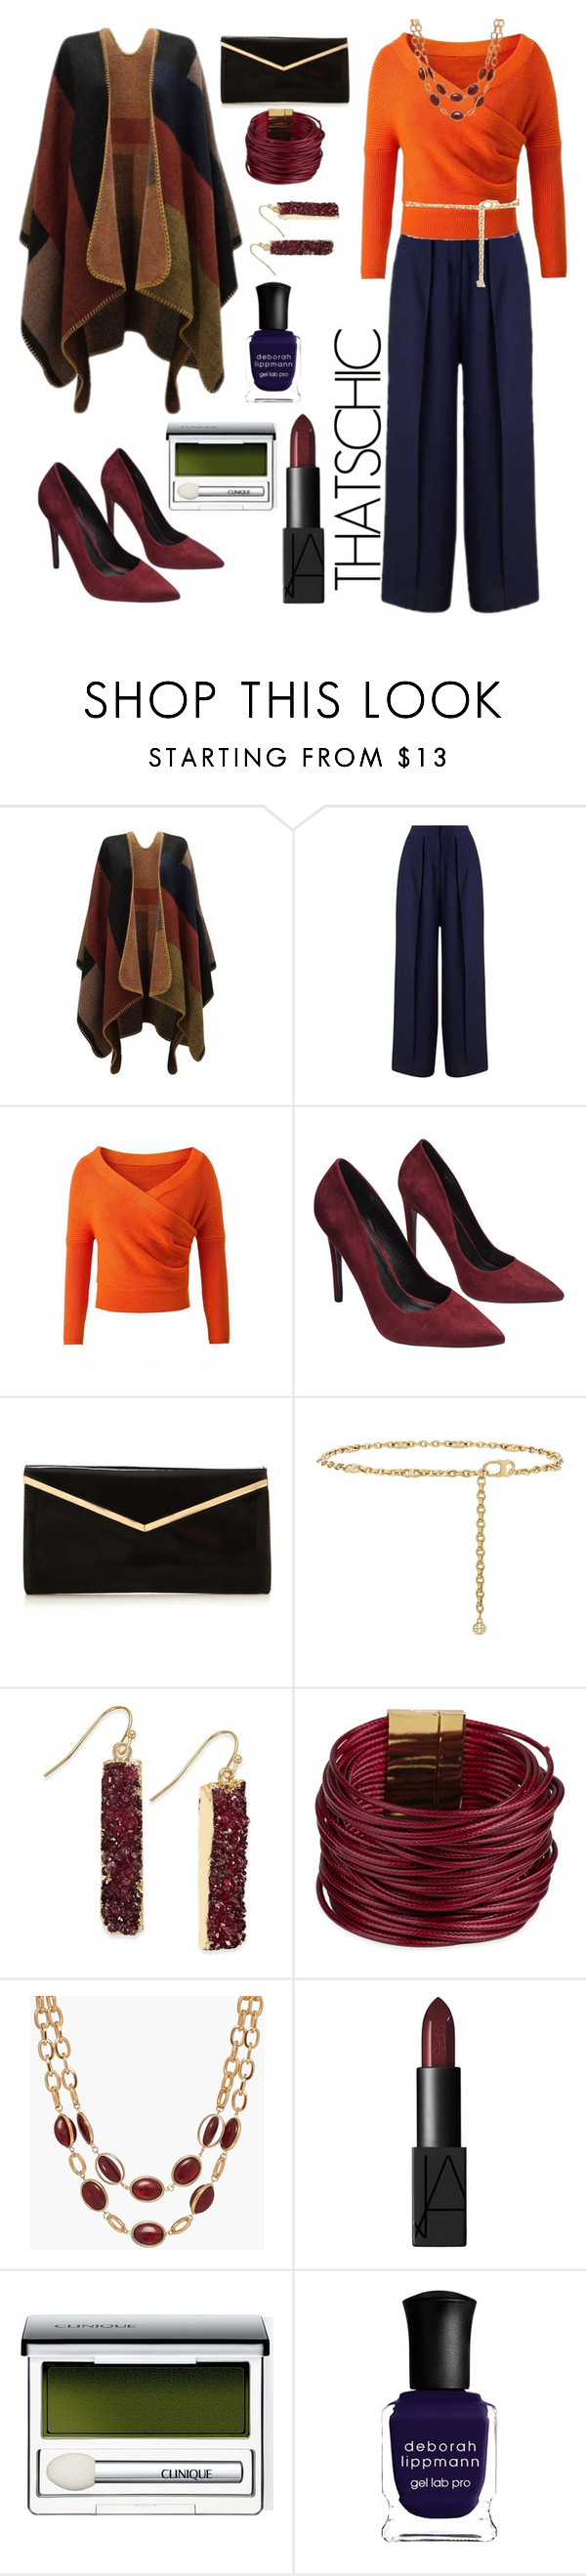 """Cozy"" by whatbigeyes ❤ liked on Polyvore featuring Miss Selfridge, WithChic, Wet Seal, Tory Burch, INC International Concepts, SAACHI Style, Talbots, NARS Cosmetics, Clinique and Deborah Lippmann"